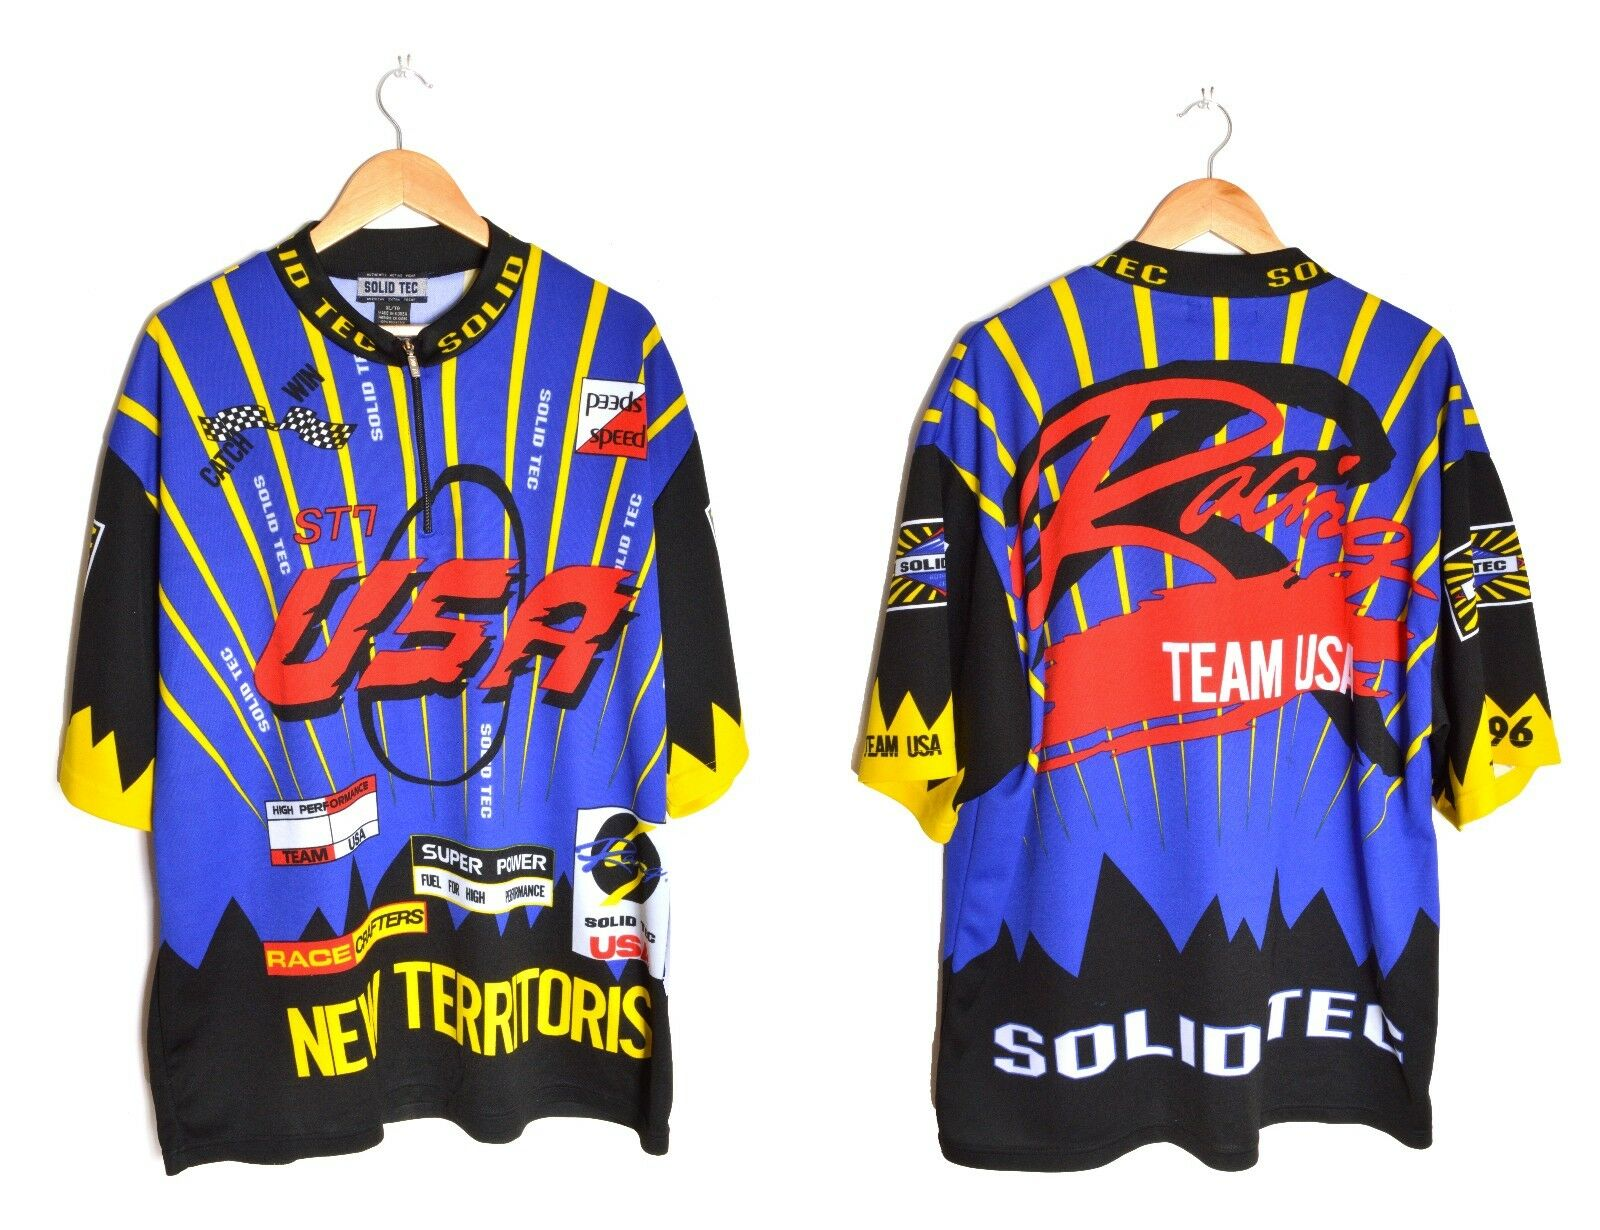 Team USA Cycling Jersey Race Graphic Shirt Half Zip Solid  Tec 1996 Olympic Sz XL  factory outlet online discount sale